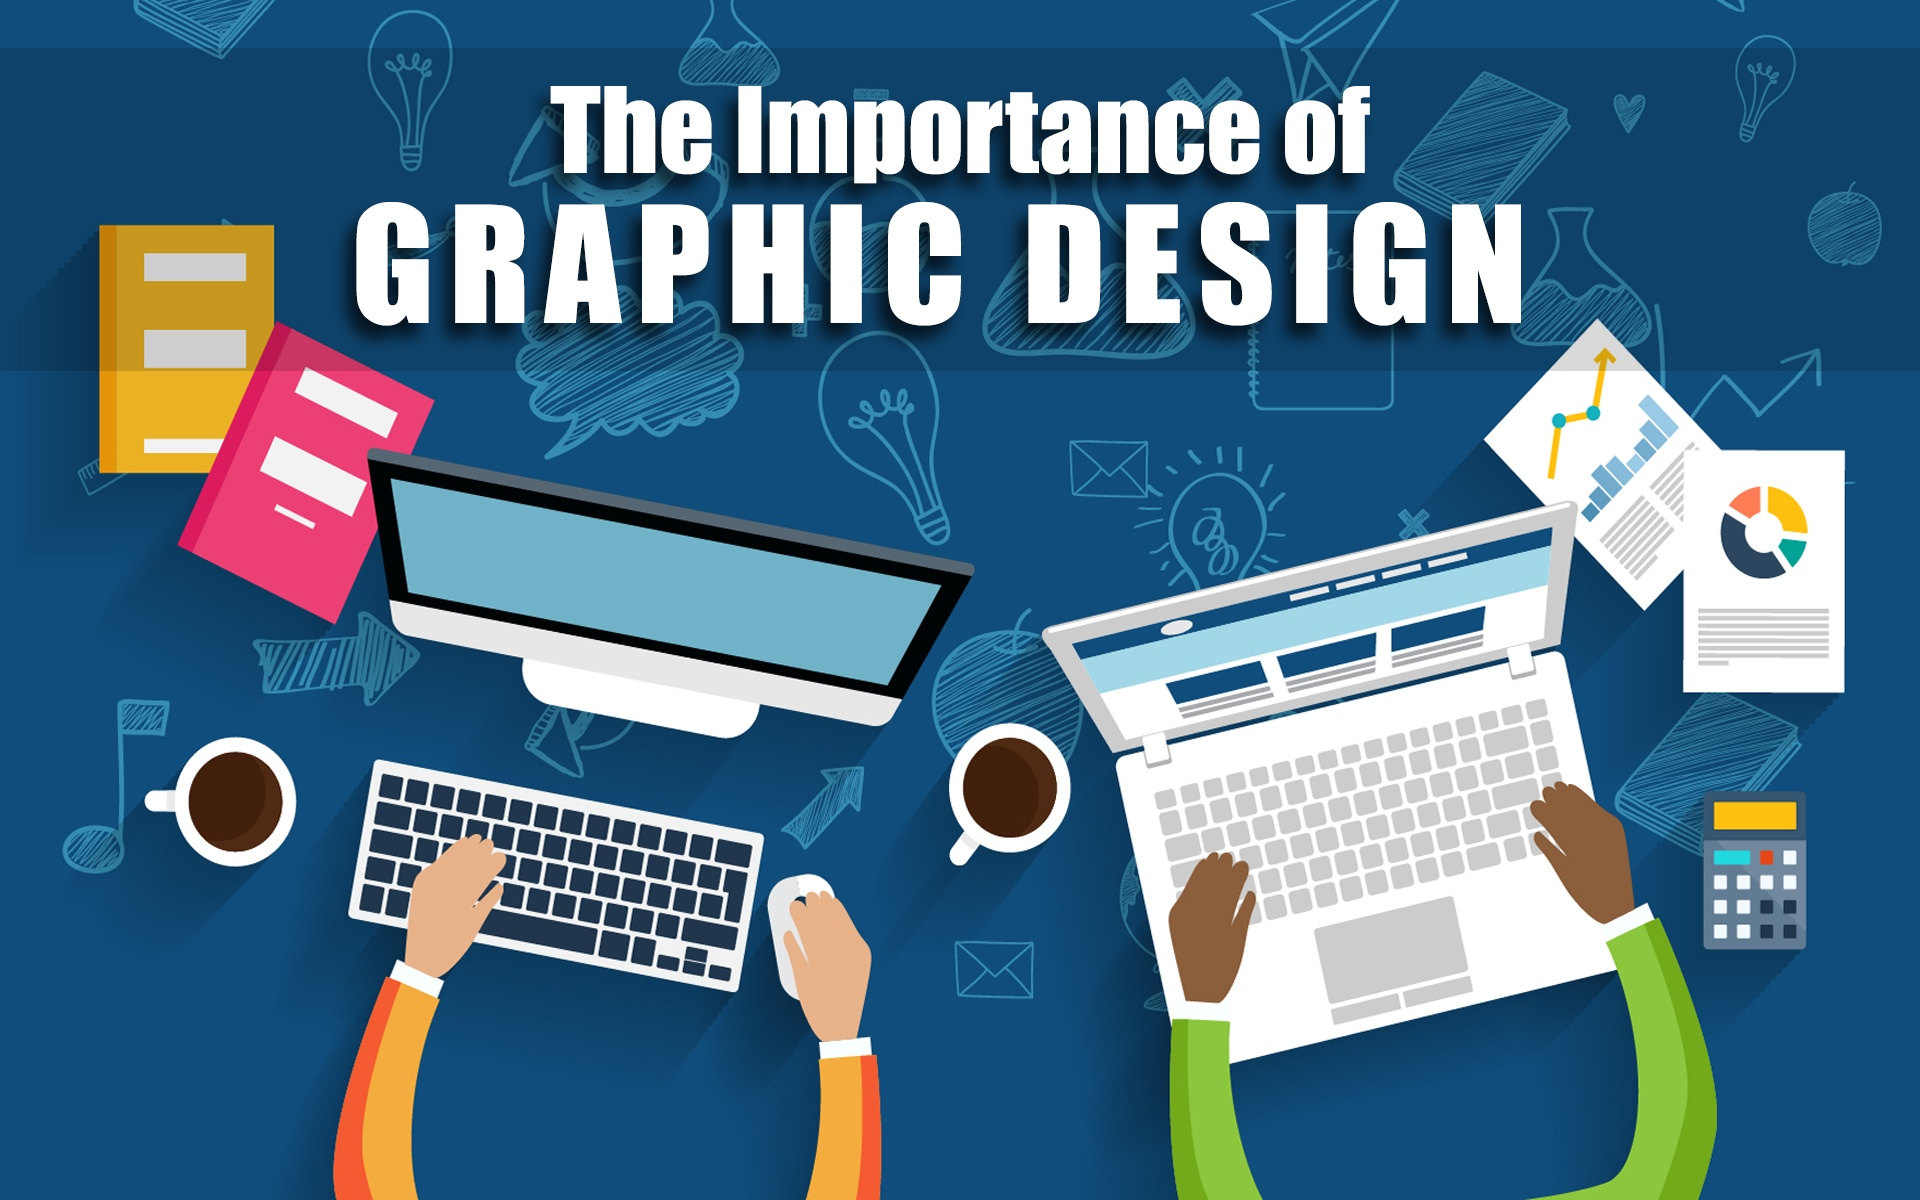 The Importance of Graphic Design